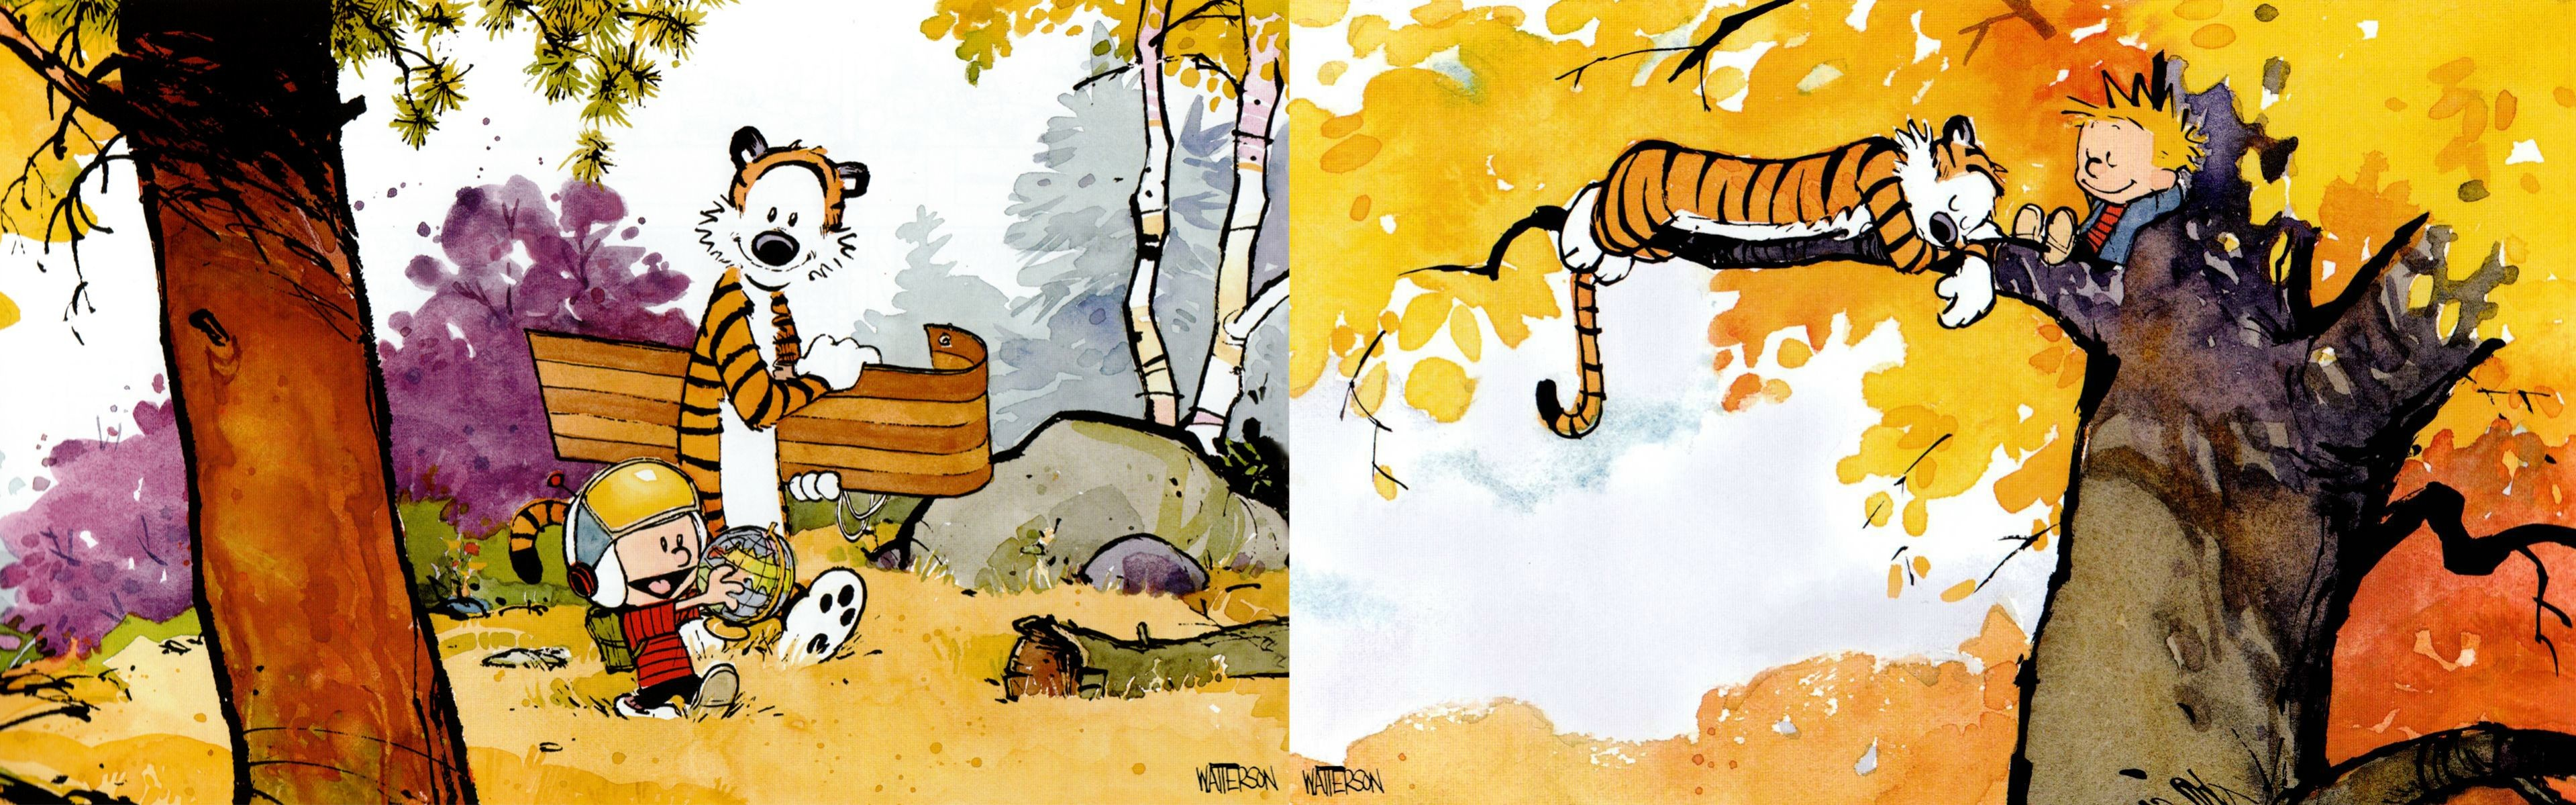 3839x1199 Dual Screen Wallpapers - Calvin and Hobbes